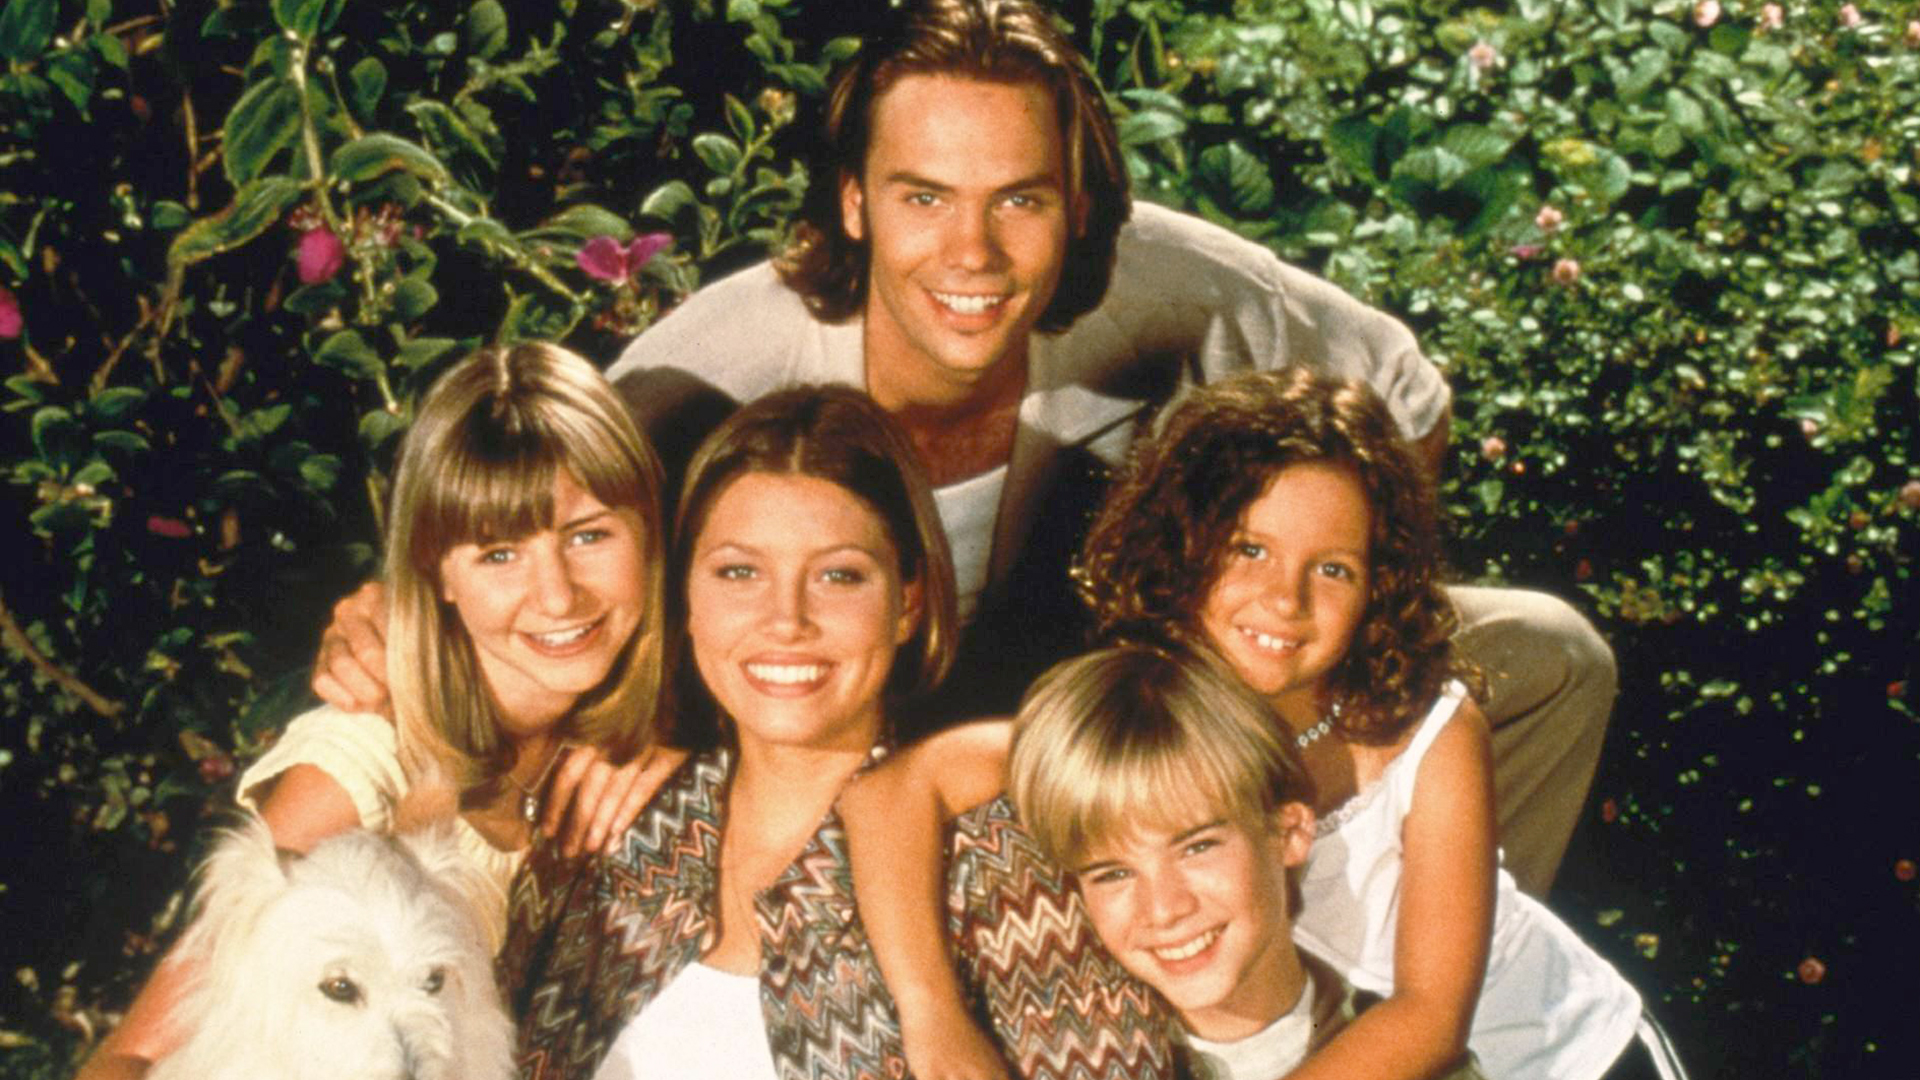 7th heaven cast tyler hoechlin dating 10